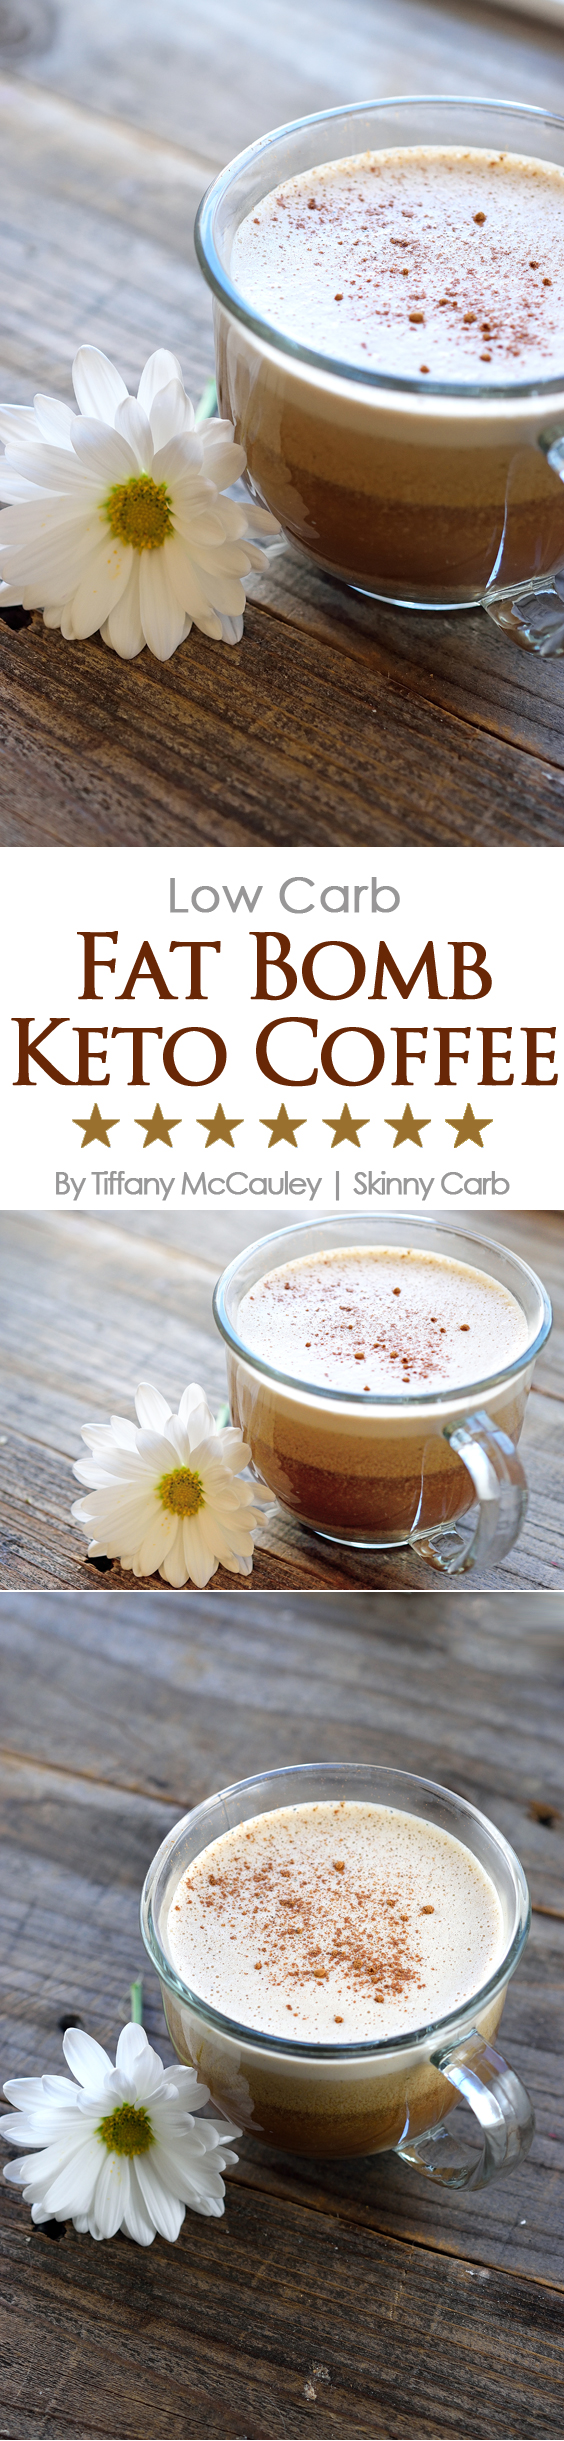 This delicious, low carb, fat bomb, keto coffee is the perfect start to your morning. Full of healthy fats and flavor, you'll come back to this recipe again and again. ~ http://www.skinnycarb.com